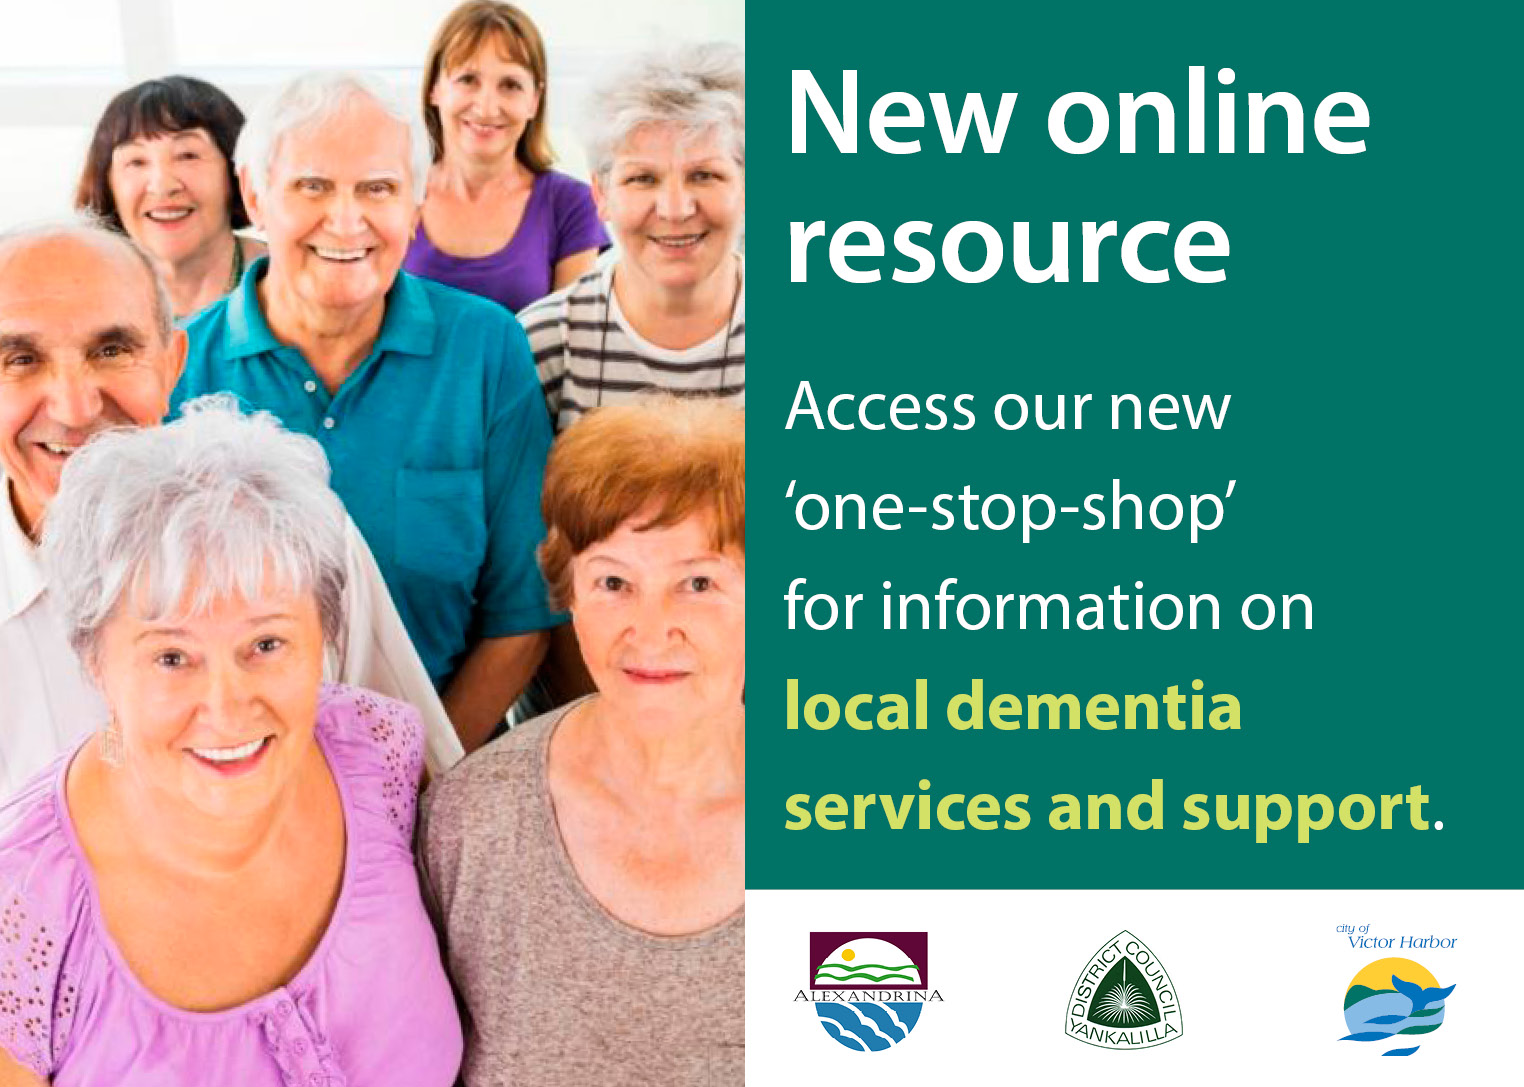 People in the community promotion of new online resource for dementia information